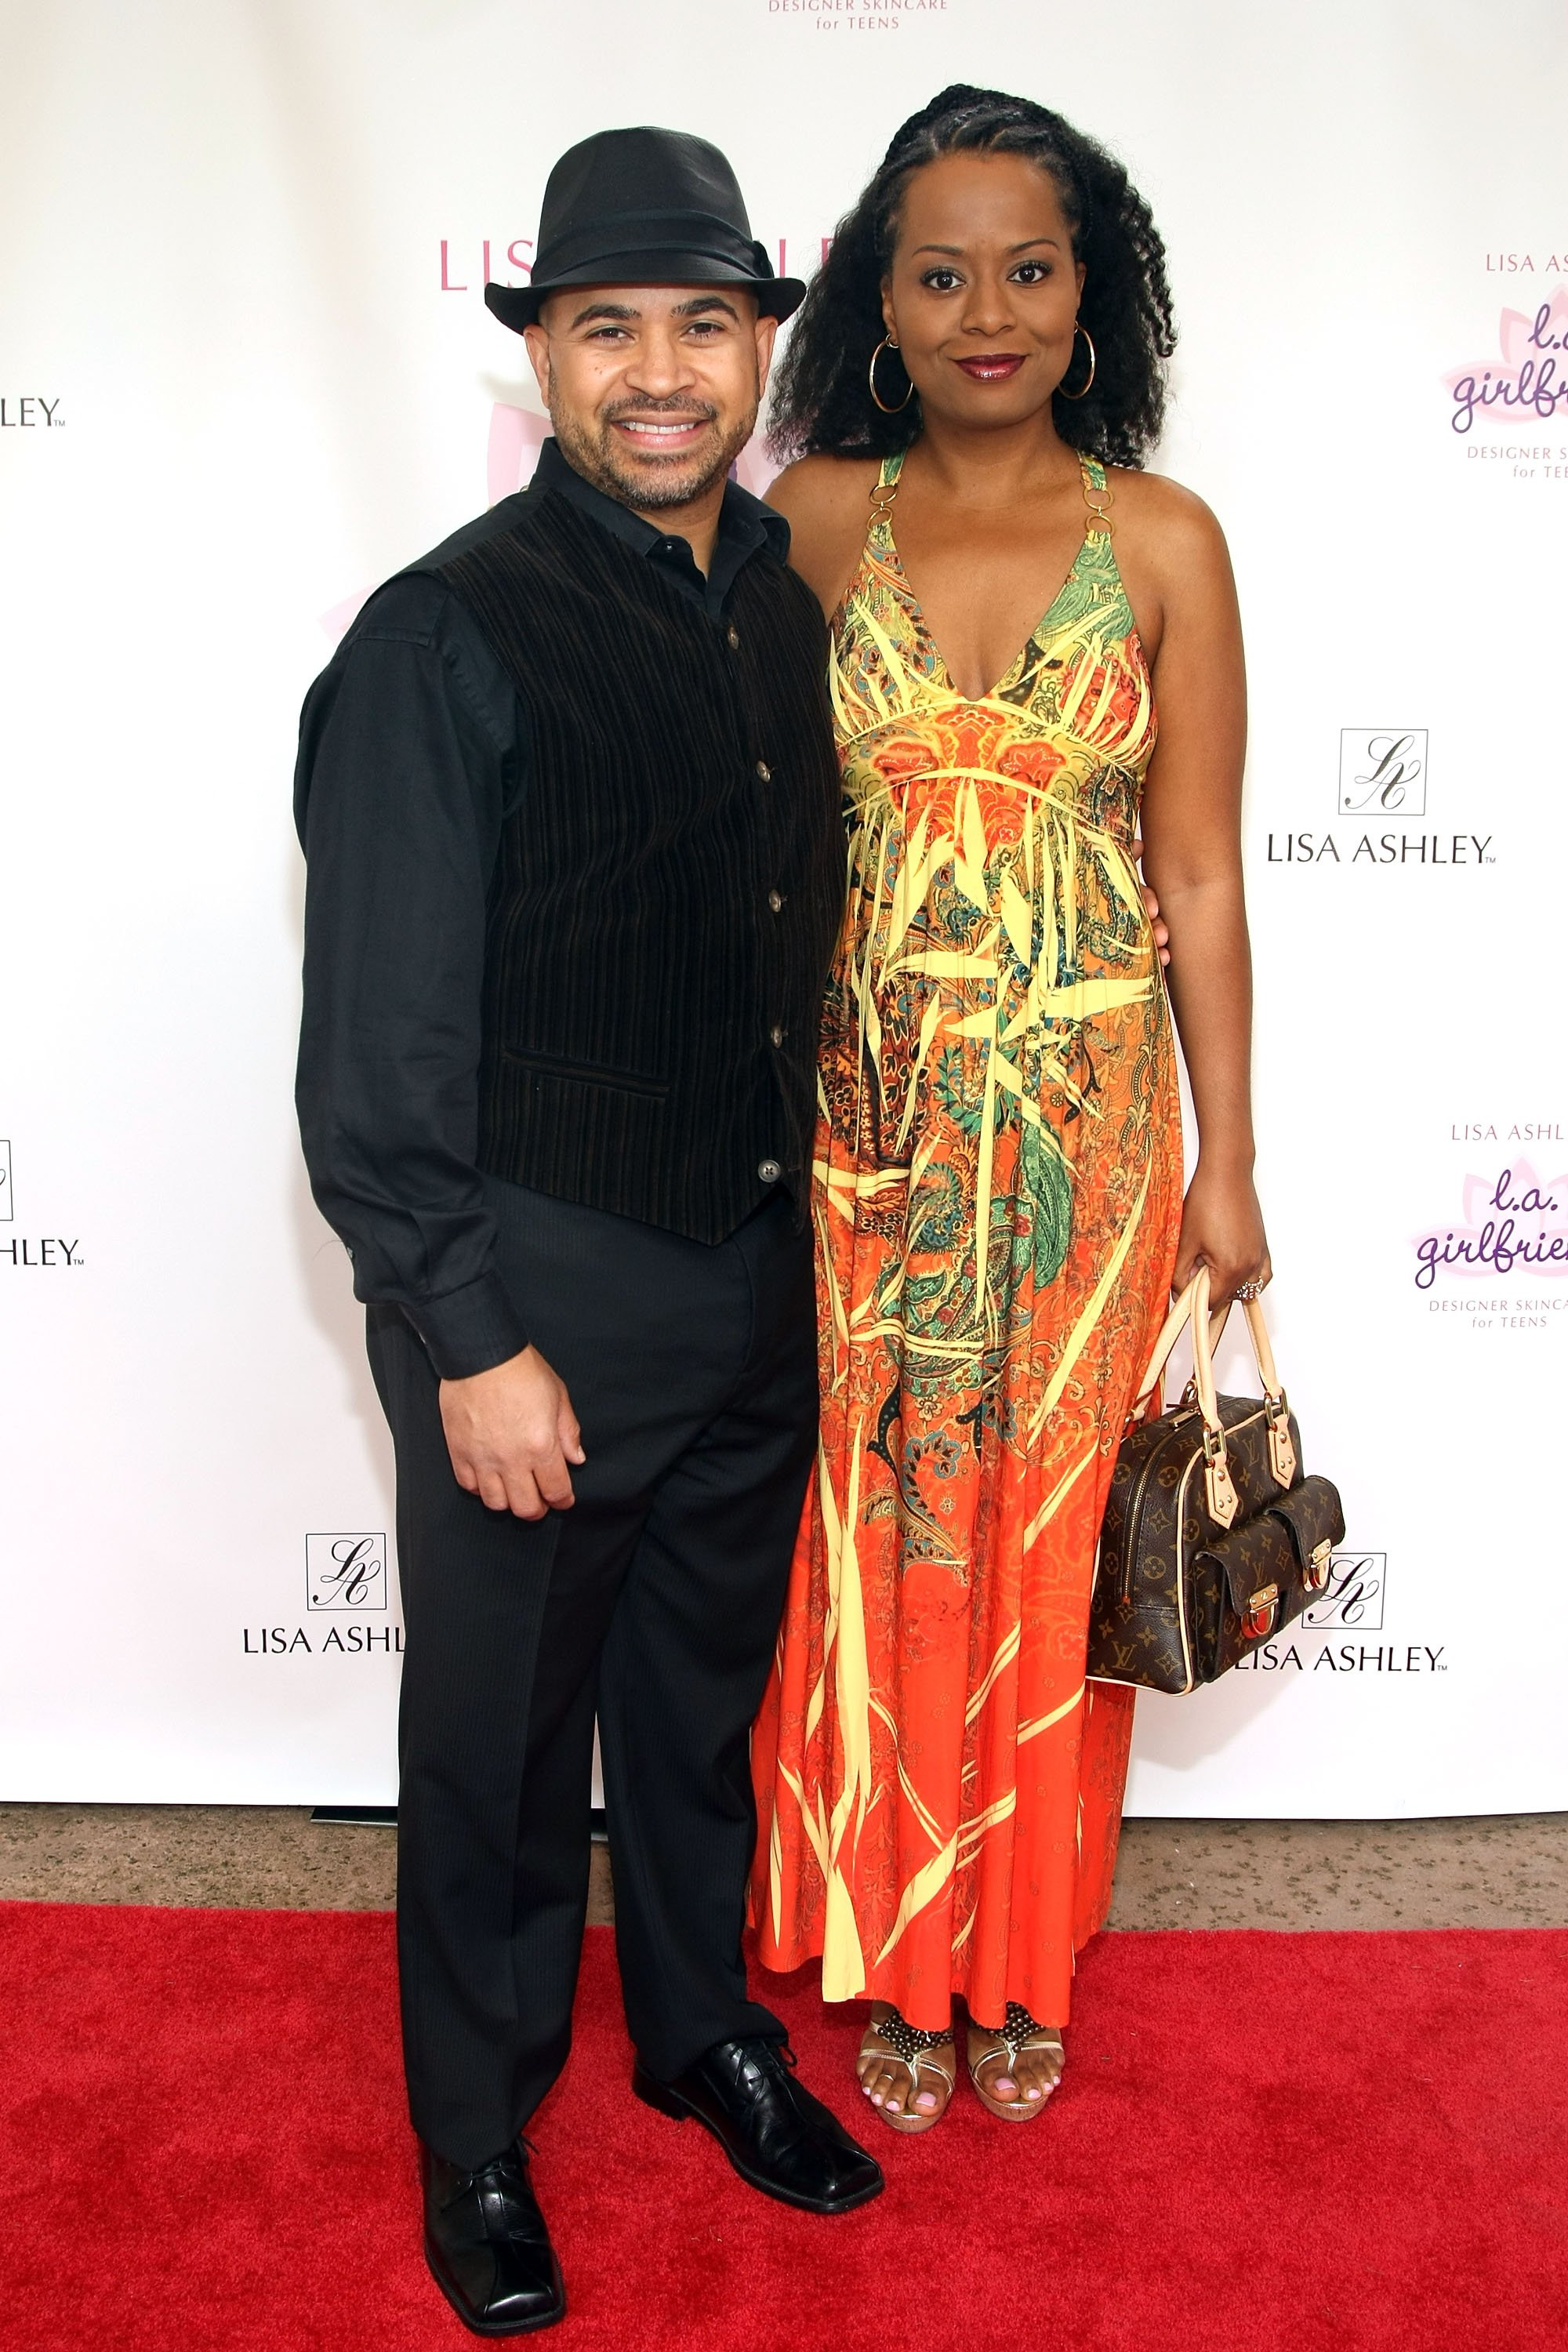 """Darryl Bell and Tempestt Bledsoe at the launch of """"Househusbands of Hollywood"""" on 29 March, 2009 in Westlake Village, California 